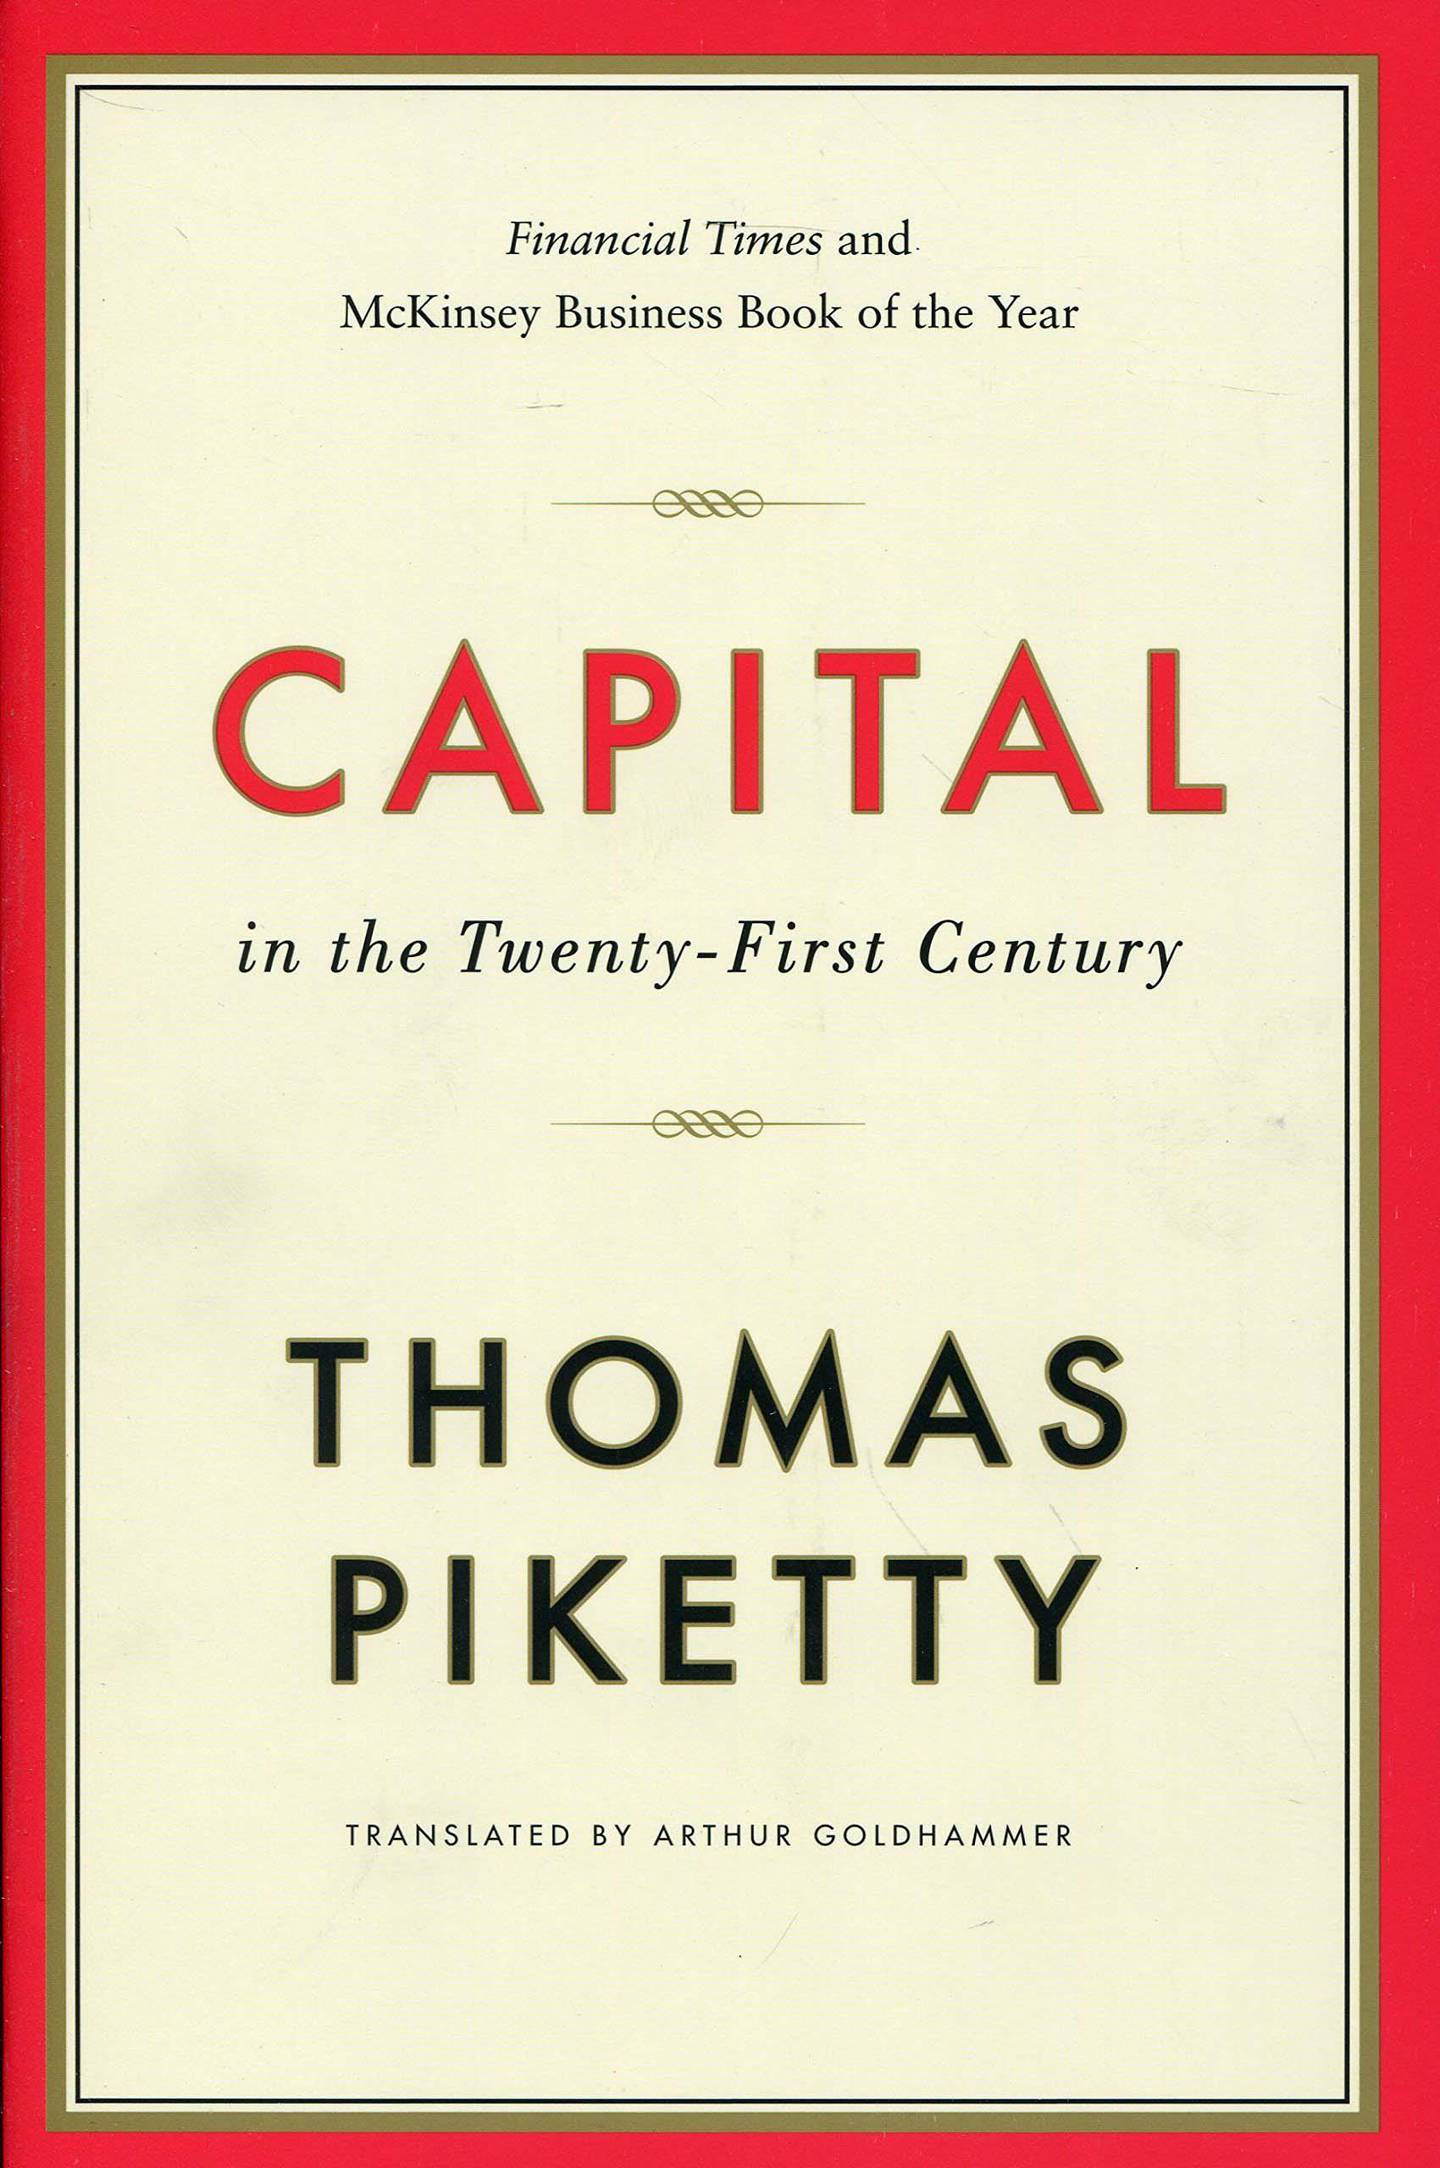 Capital in the Twenty First Century by Thomas Piketty, translated by Arthur Goldhammer. Courtesy Harvard University Press